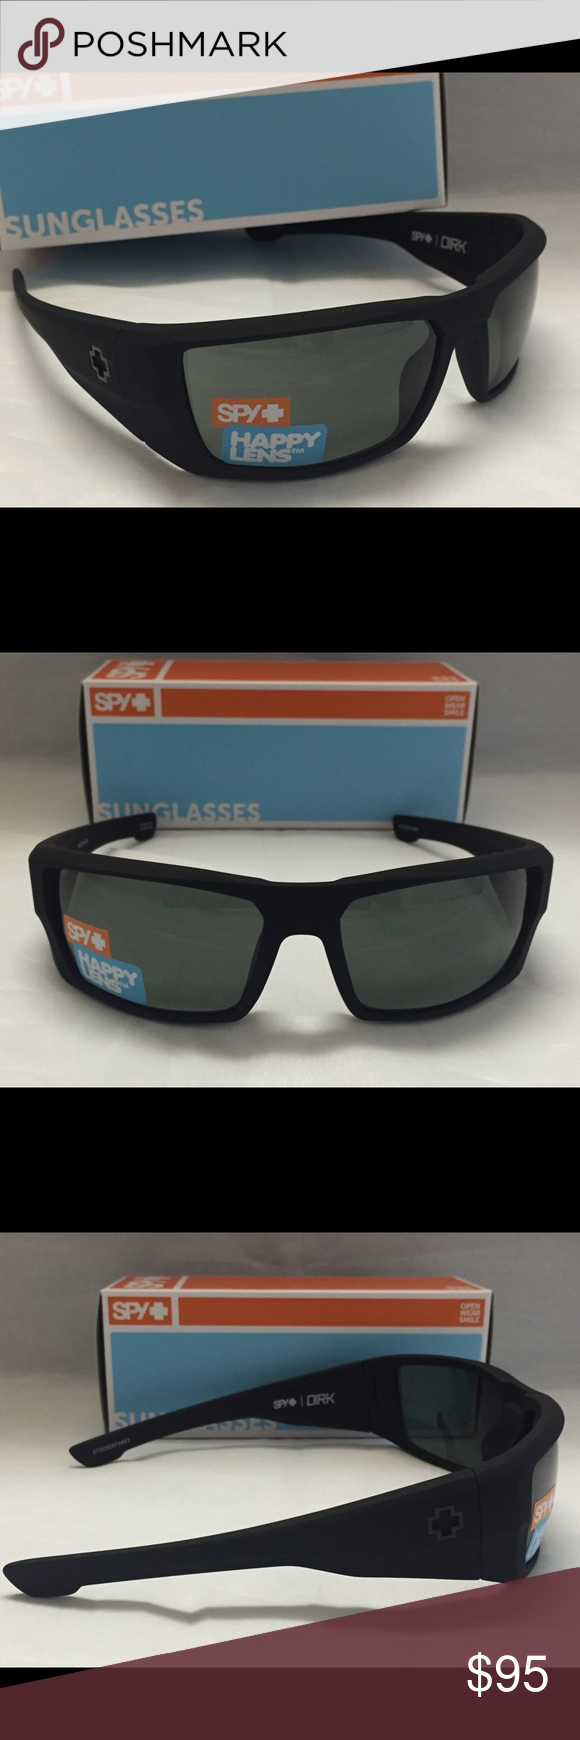 b3b77ffa84638 Spy Optic Dirk Sunglasses Matte Black w Happy Lens Brand new in the box Spy  Optic Dirk Sunglasses with Soft Matte Black Frame and Happy Gray Green Lens.